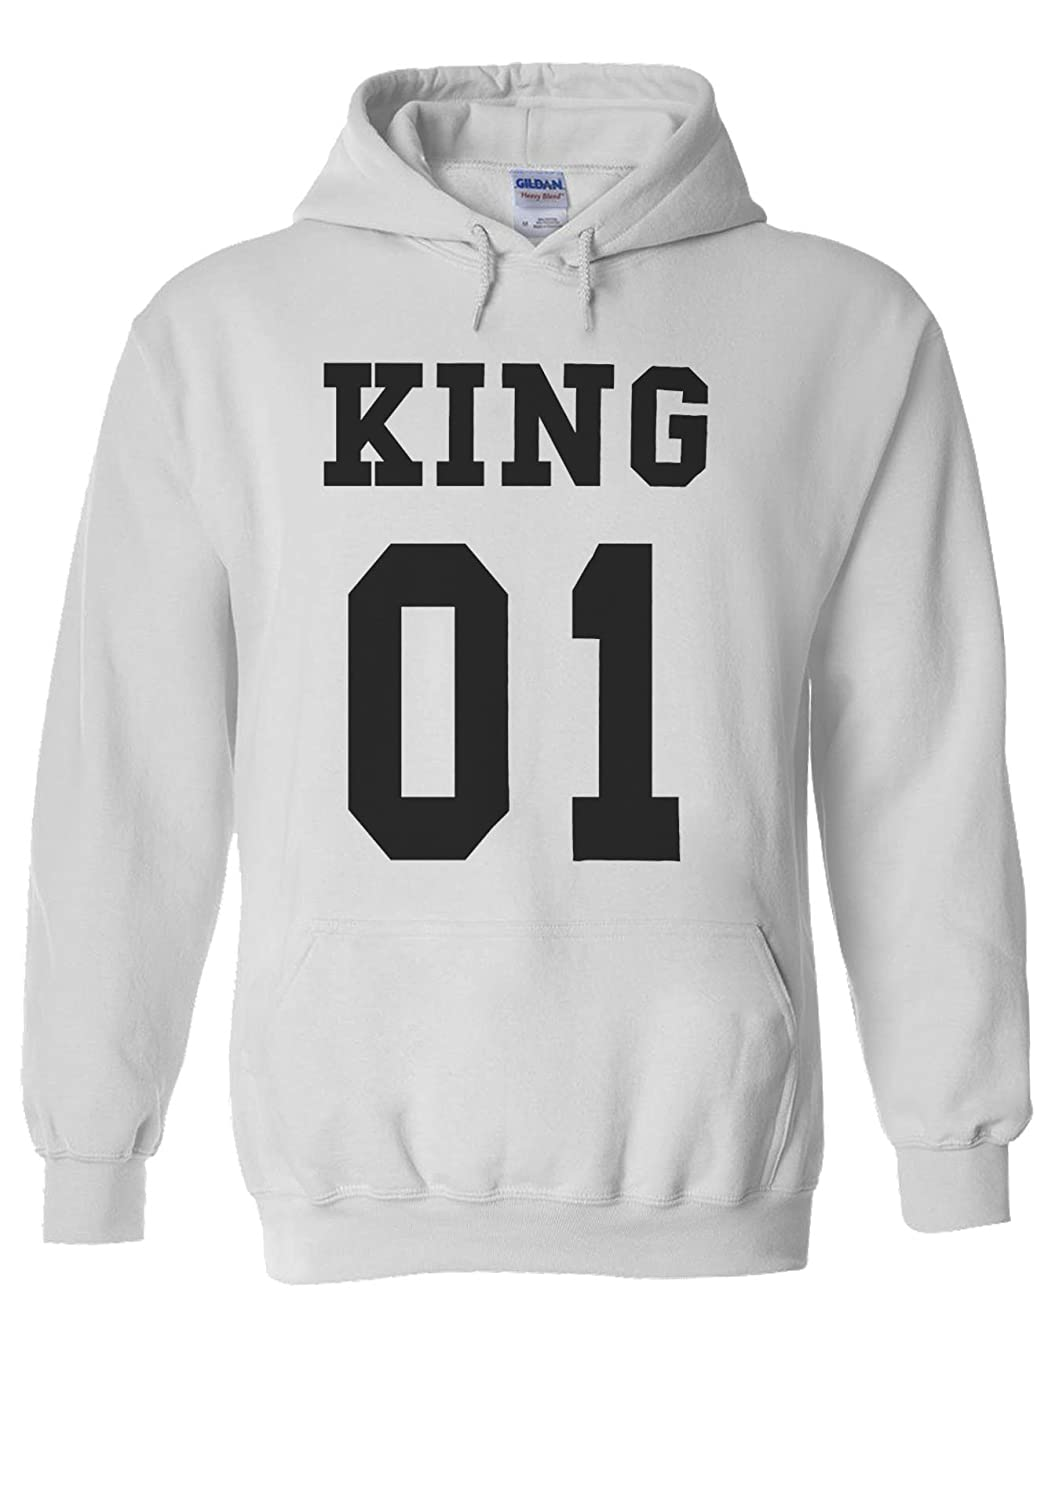 King Or Queen His And Hers Valentines Couple Novelty White Men Women Damen  Herren Unisex Hoodie Kapuzenpullover Verschiedene Farben: Amazon.de:  Bekleidung